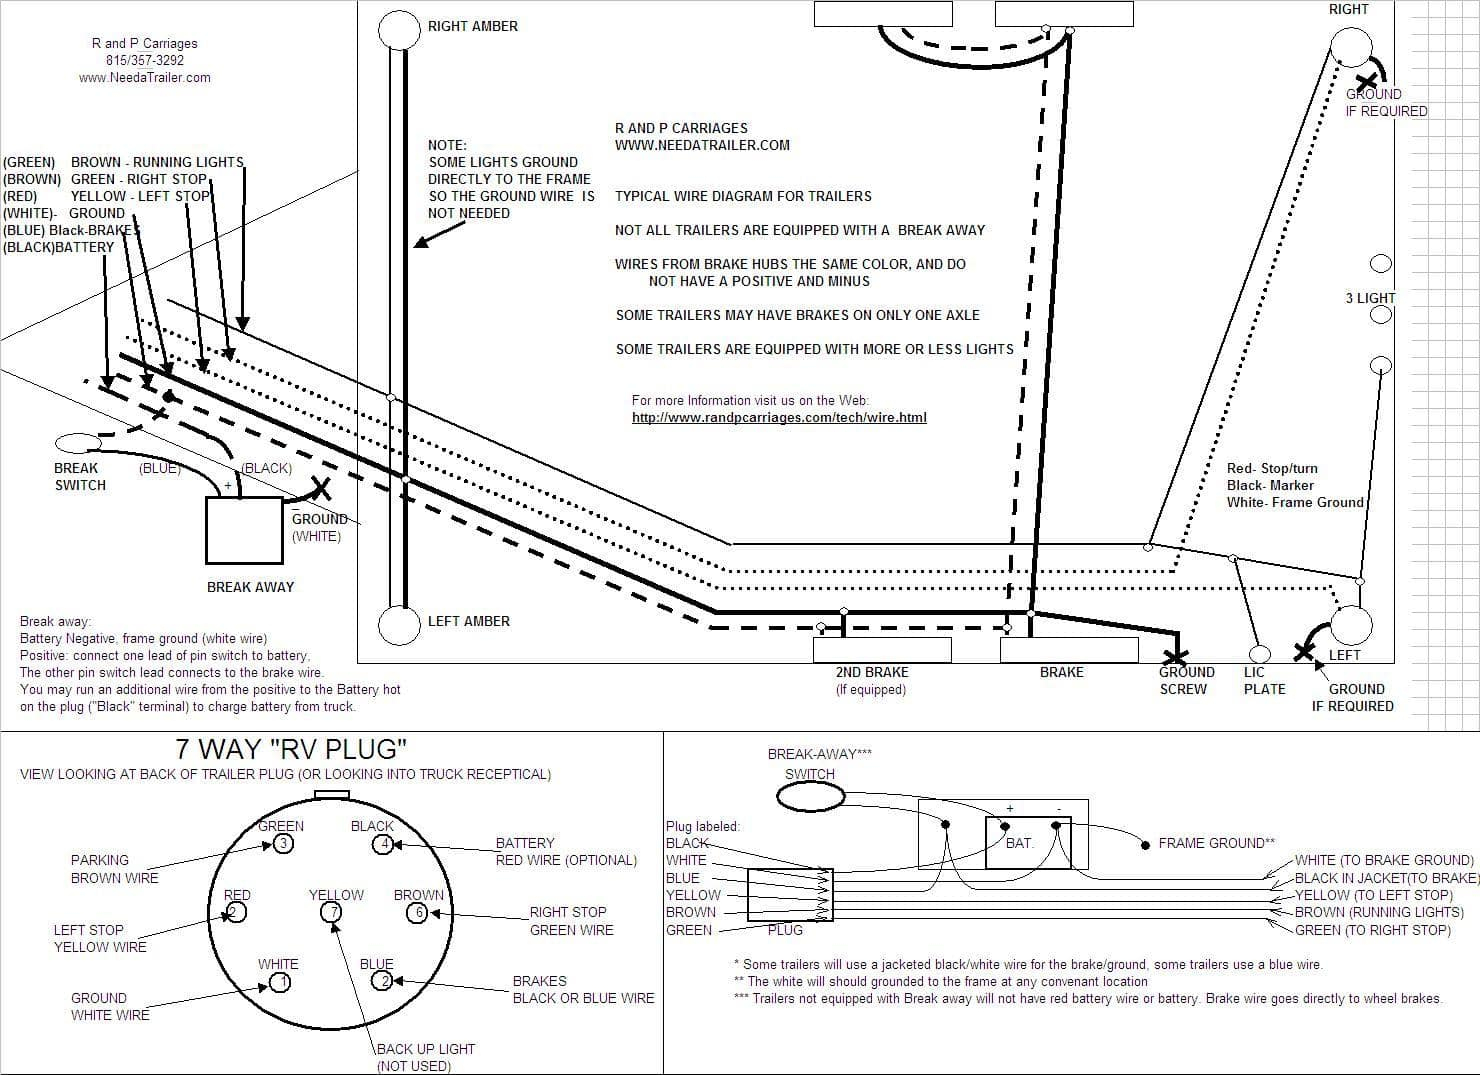 7 Way Plug Information | R And P Carriages | Cargo, Utility, Dump - Trailer Wiring Diagram Running Lights